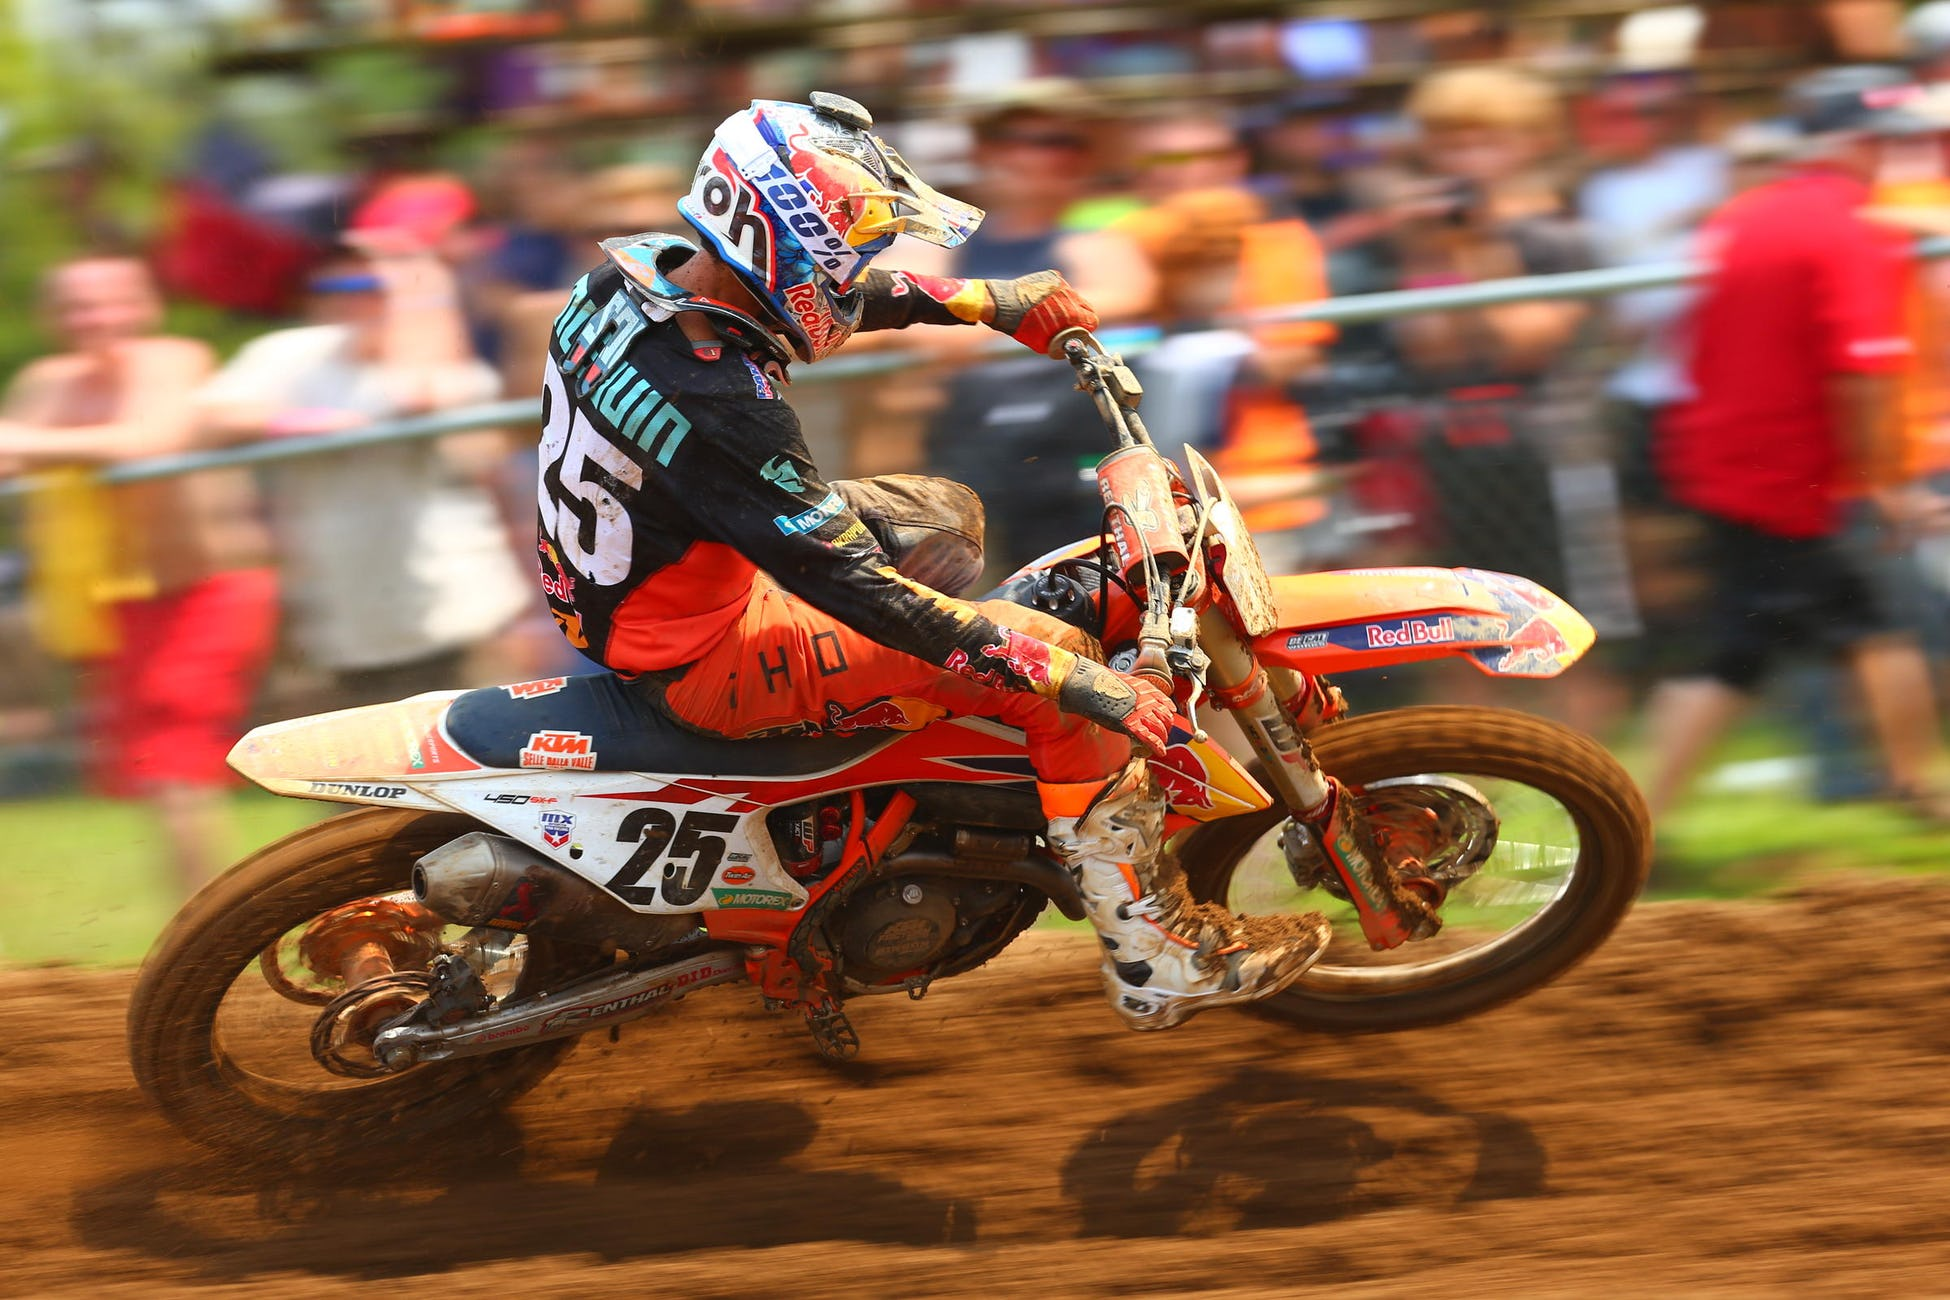 Musquin bounced back from a tough Moto 1 to take an impressive Moto 2 win.